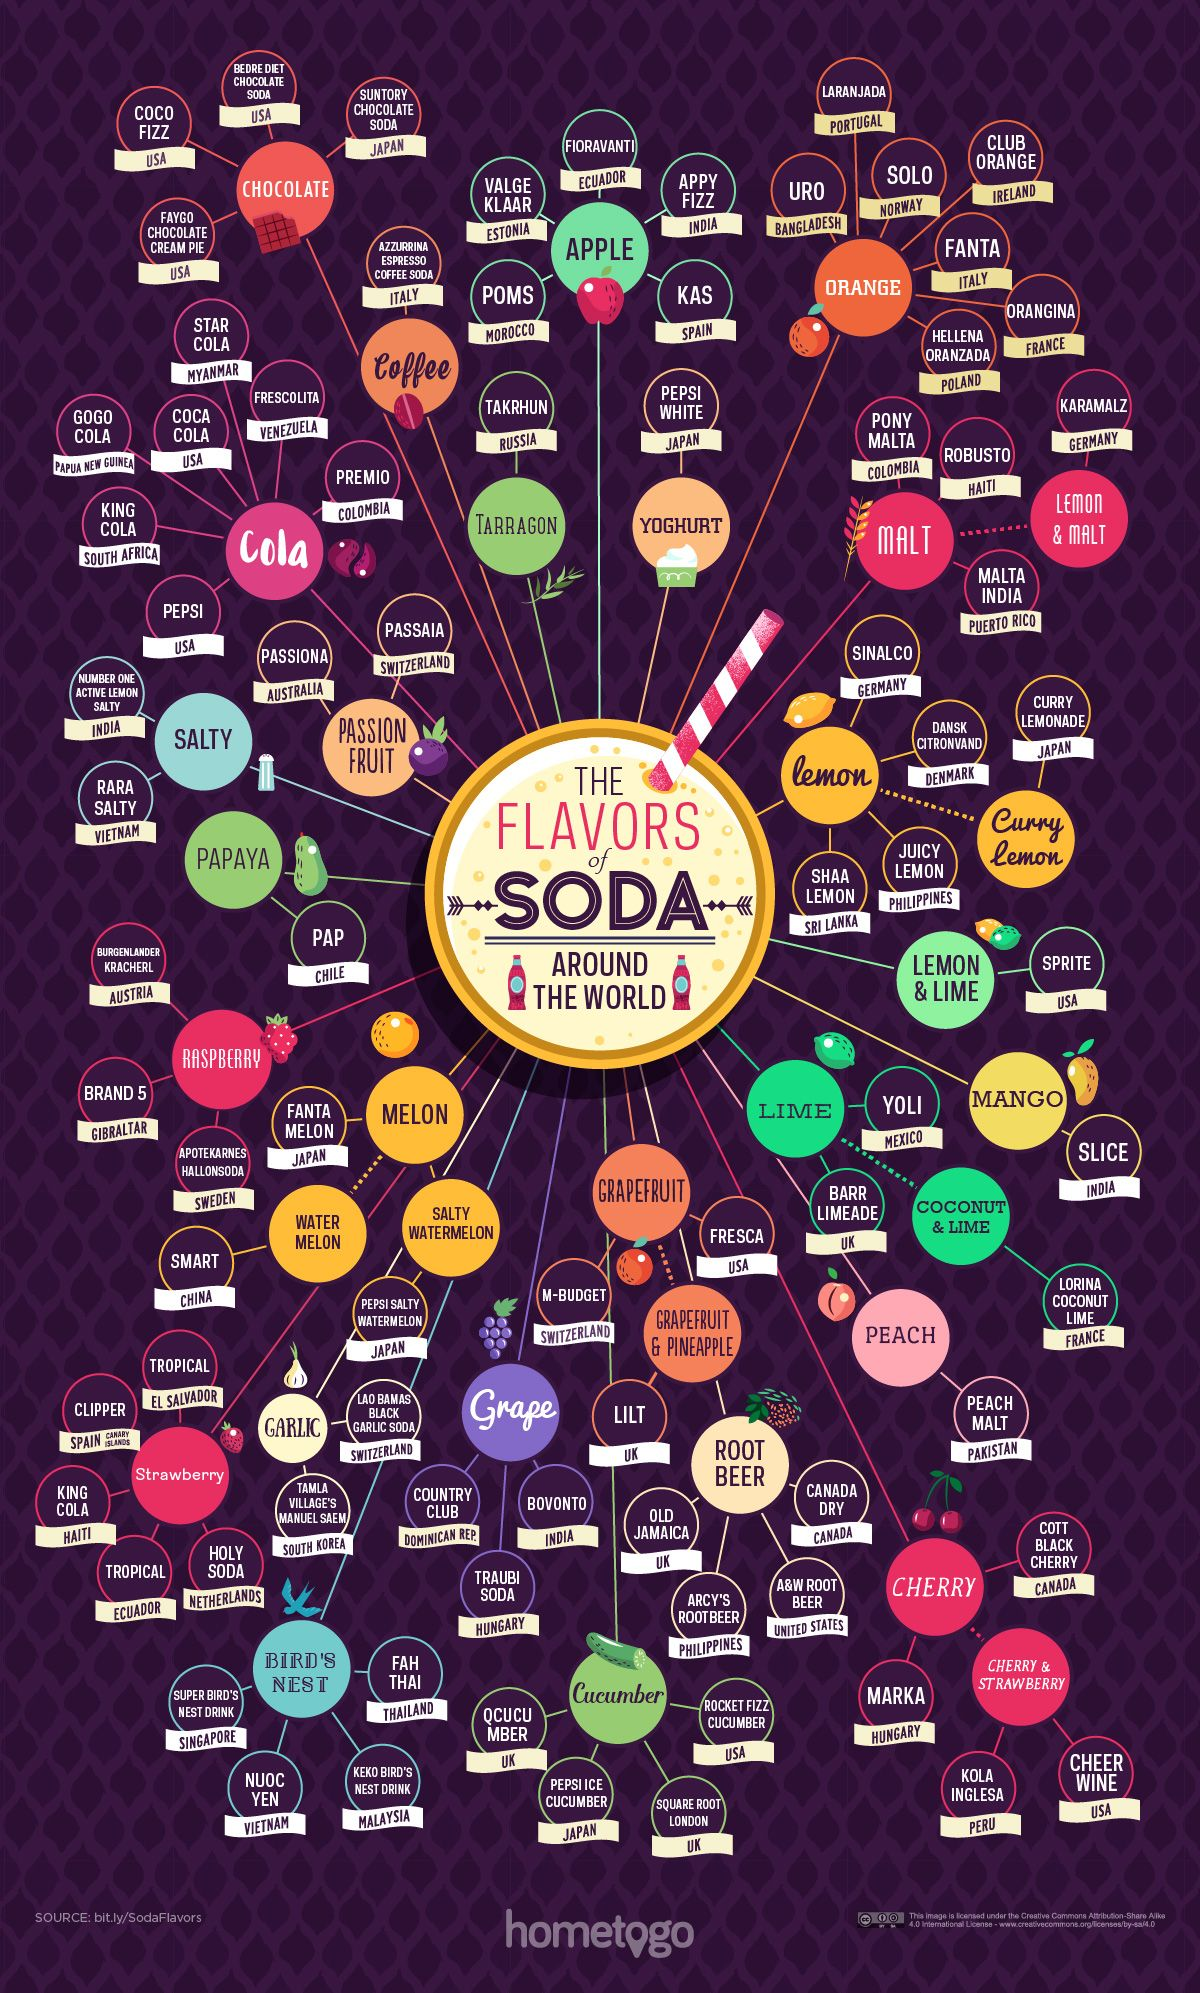 The Flavors of Soda Around the World